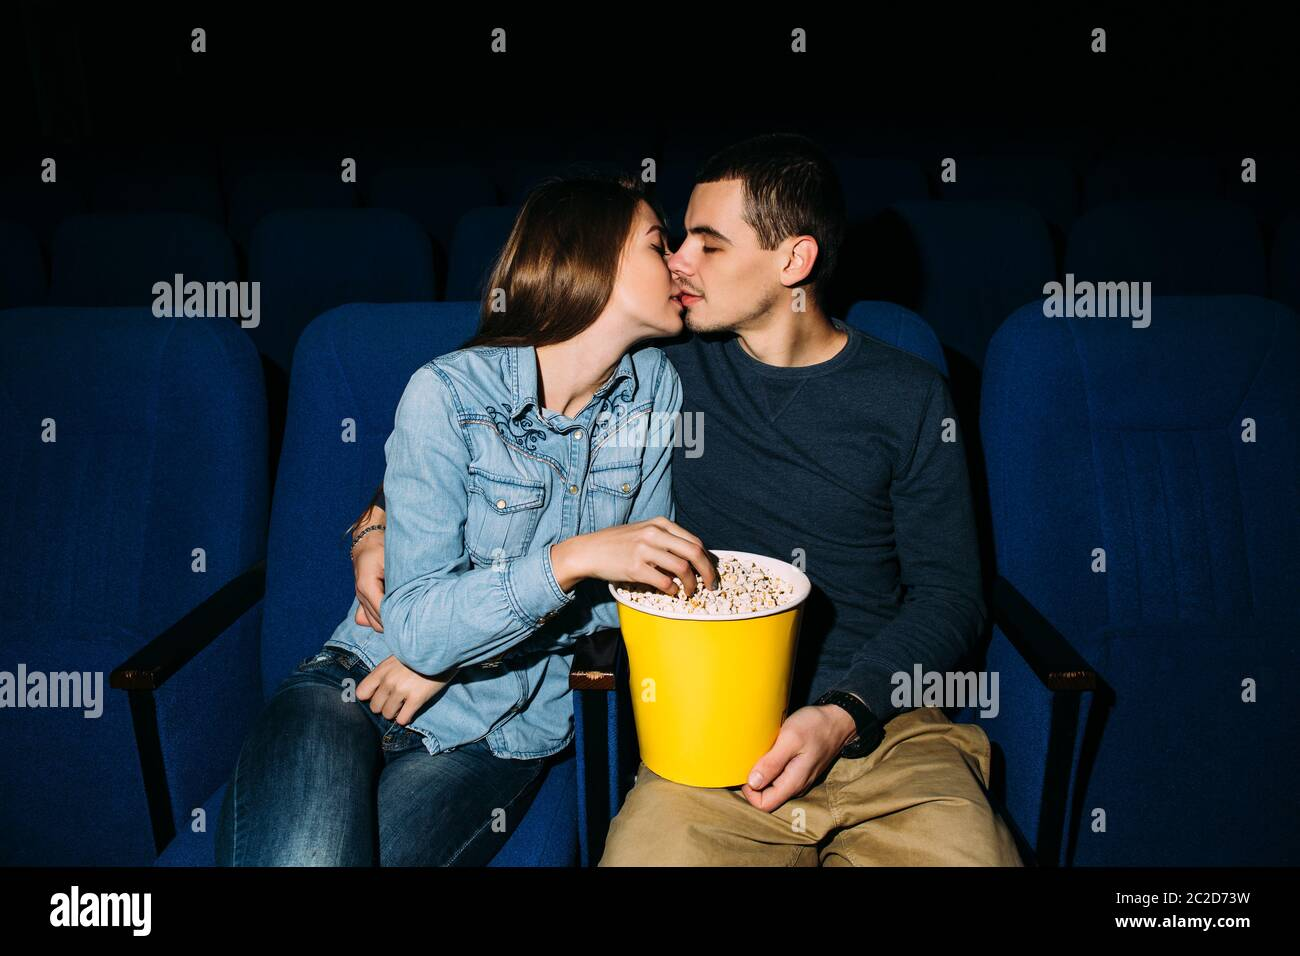 Cinema day. Young beautiful couple kissing while watching romantic